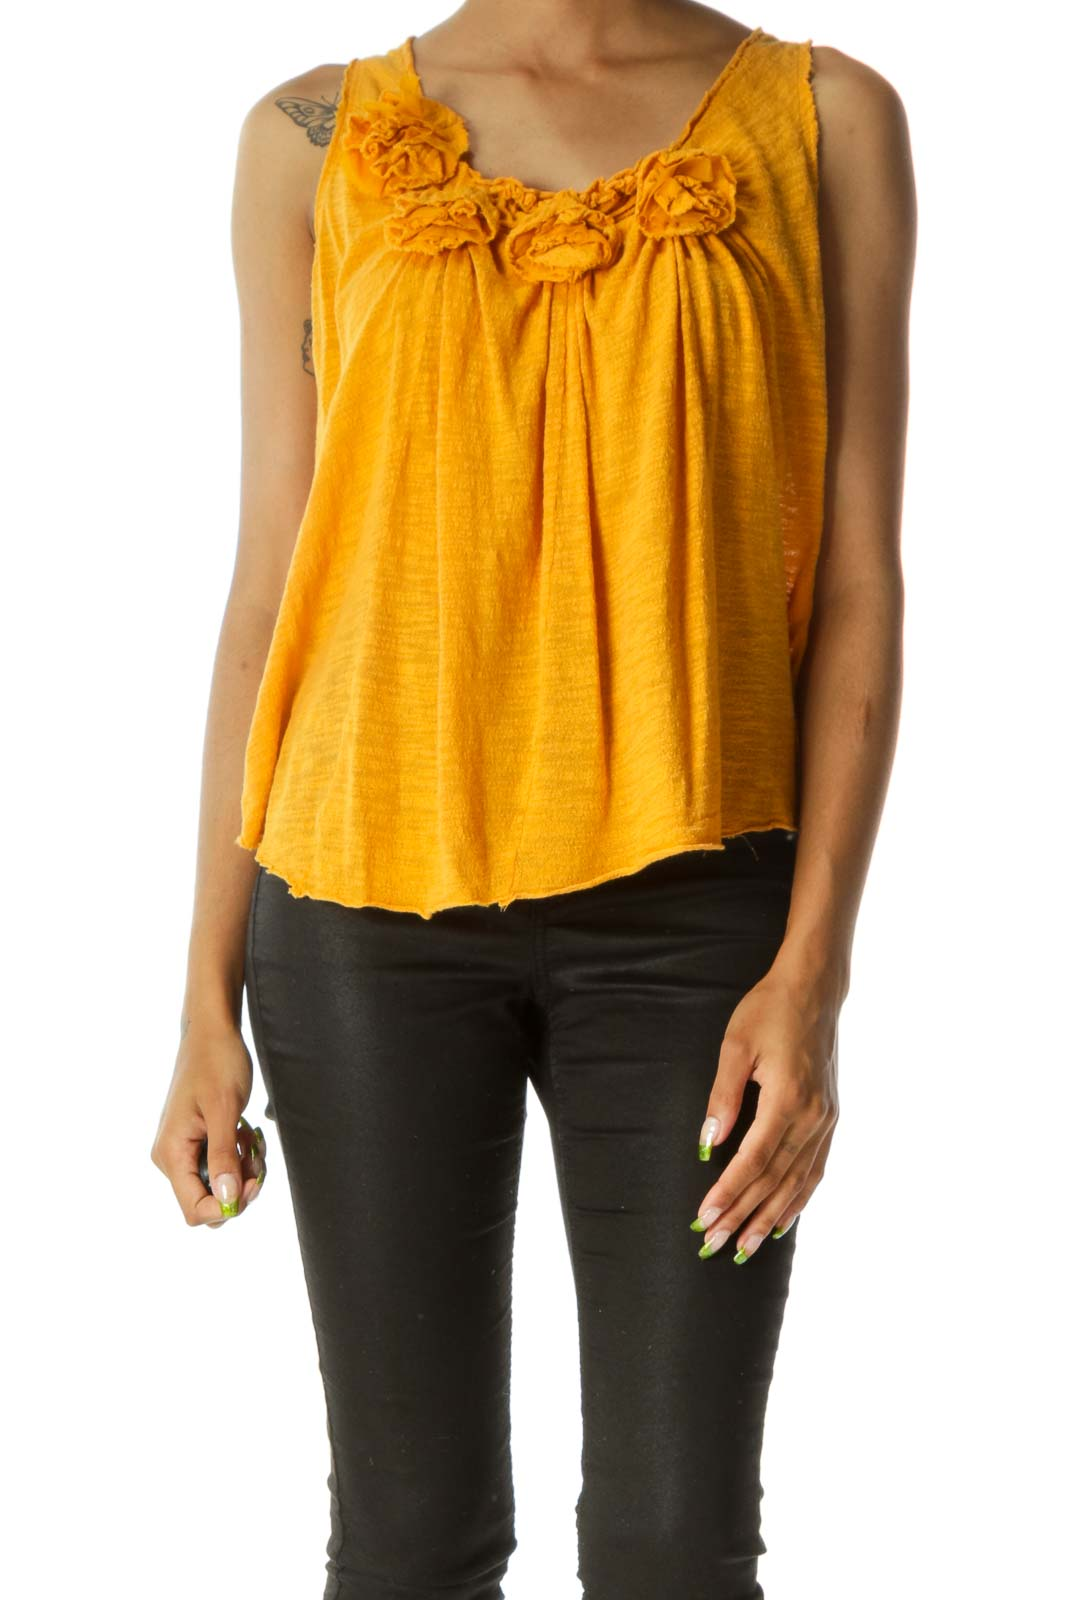 Old-Gold-Yellow 100% Cotton Flower-Appliques Knit Tank Front